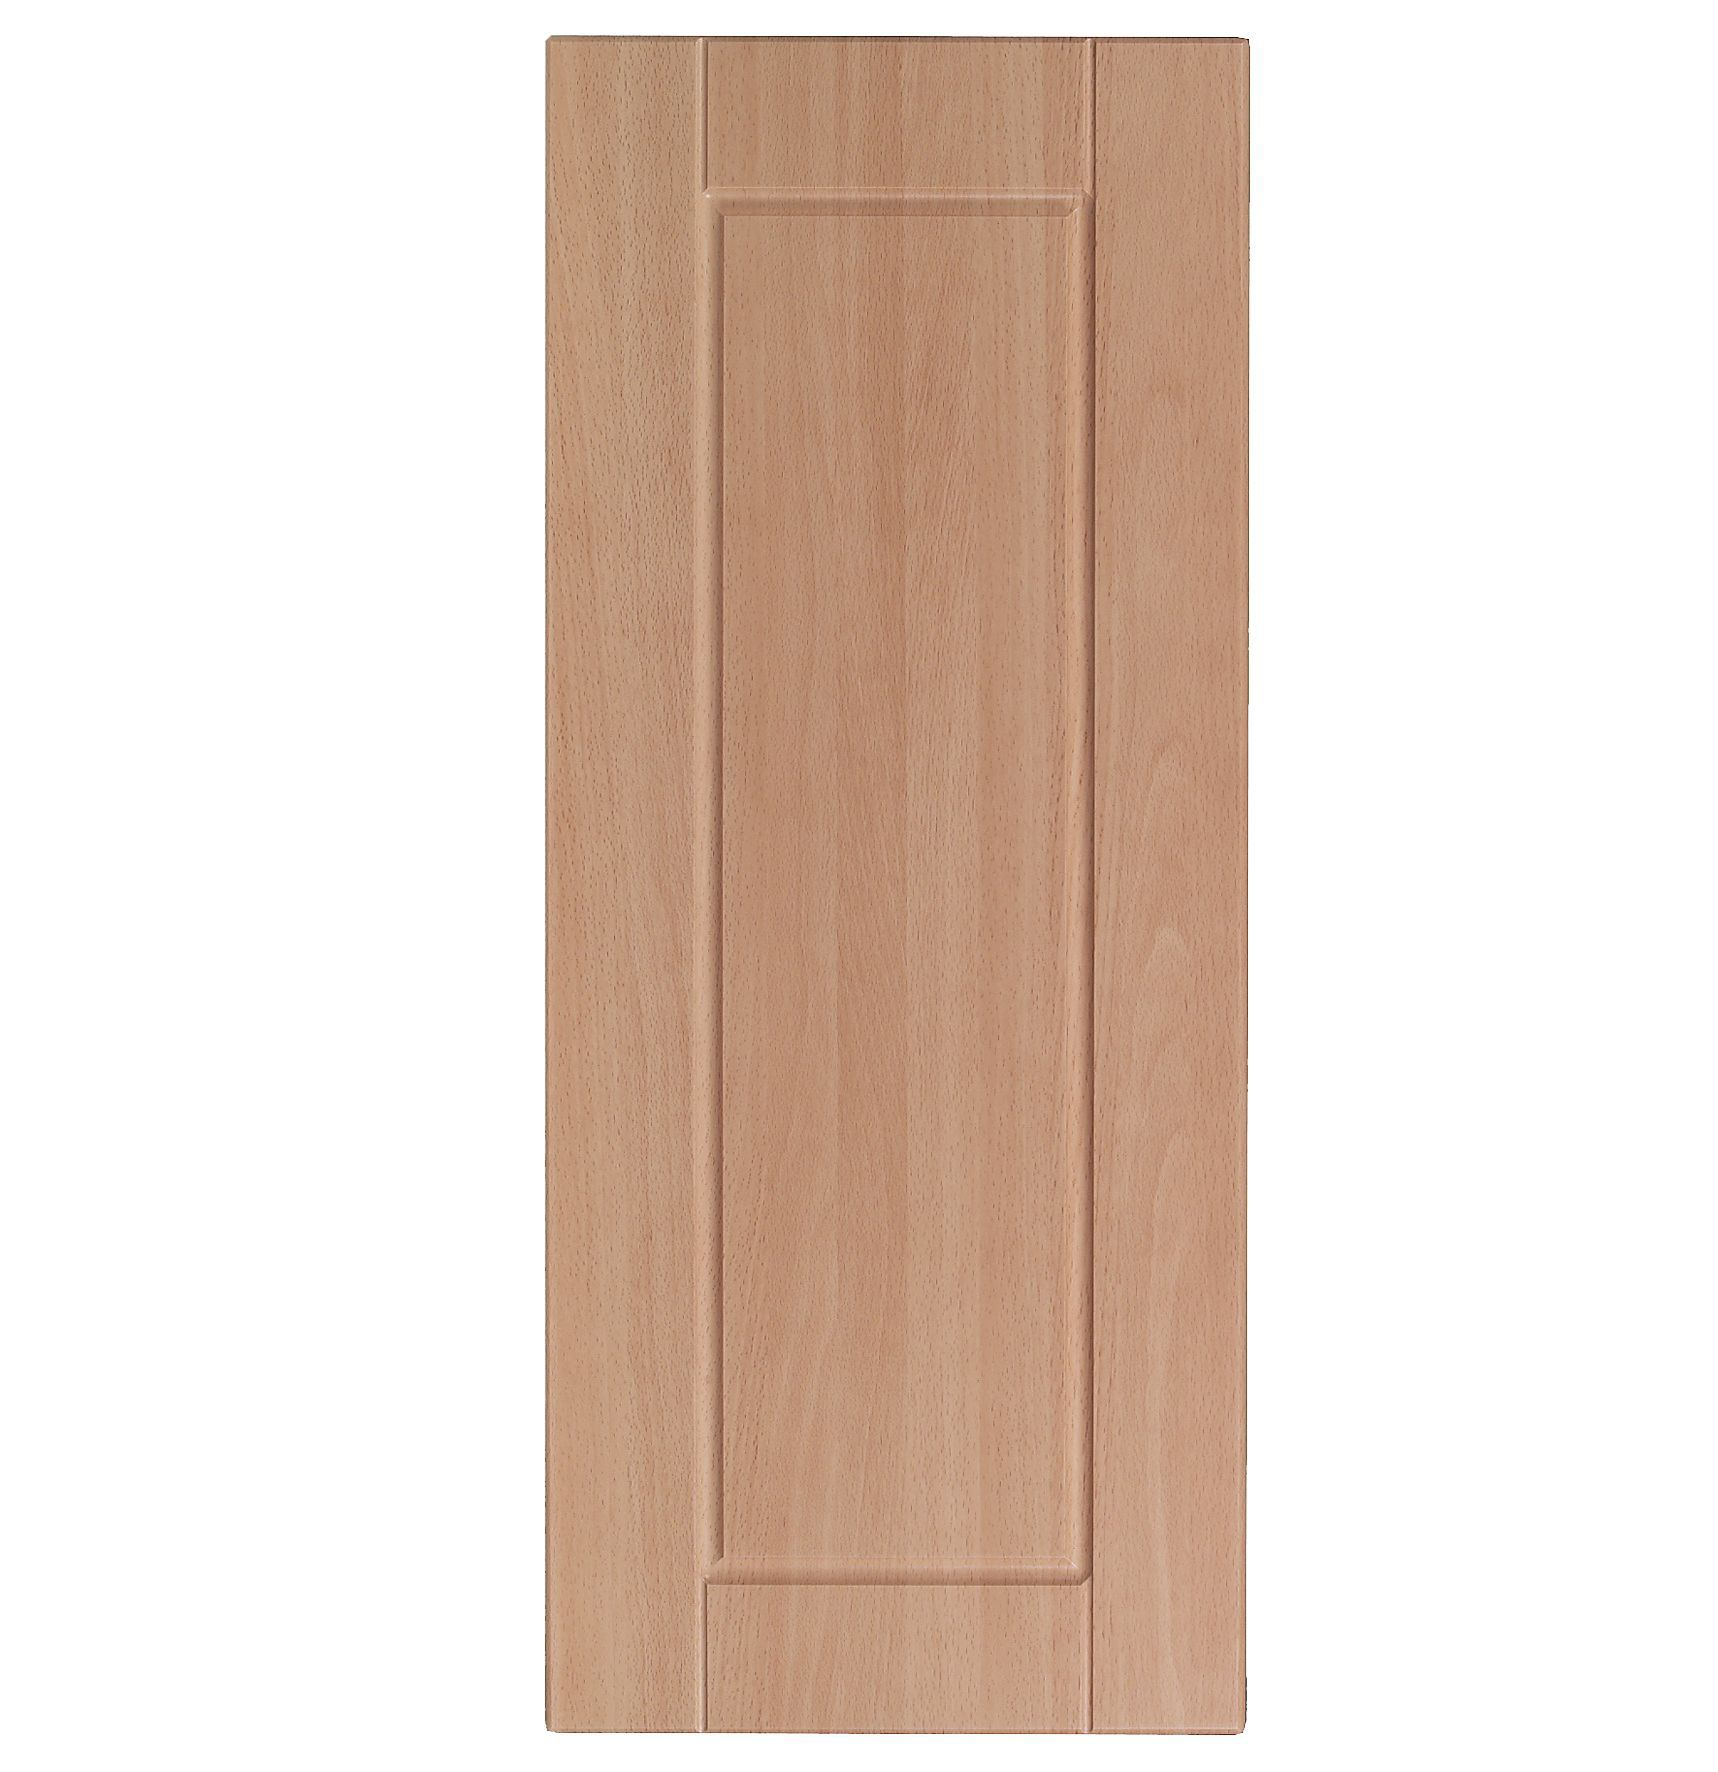 It Kitchens Chilton Beech Effect Standard Door W 300mm